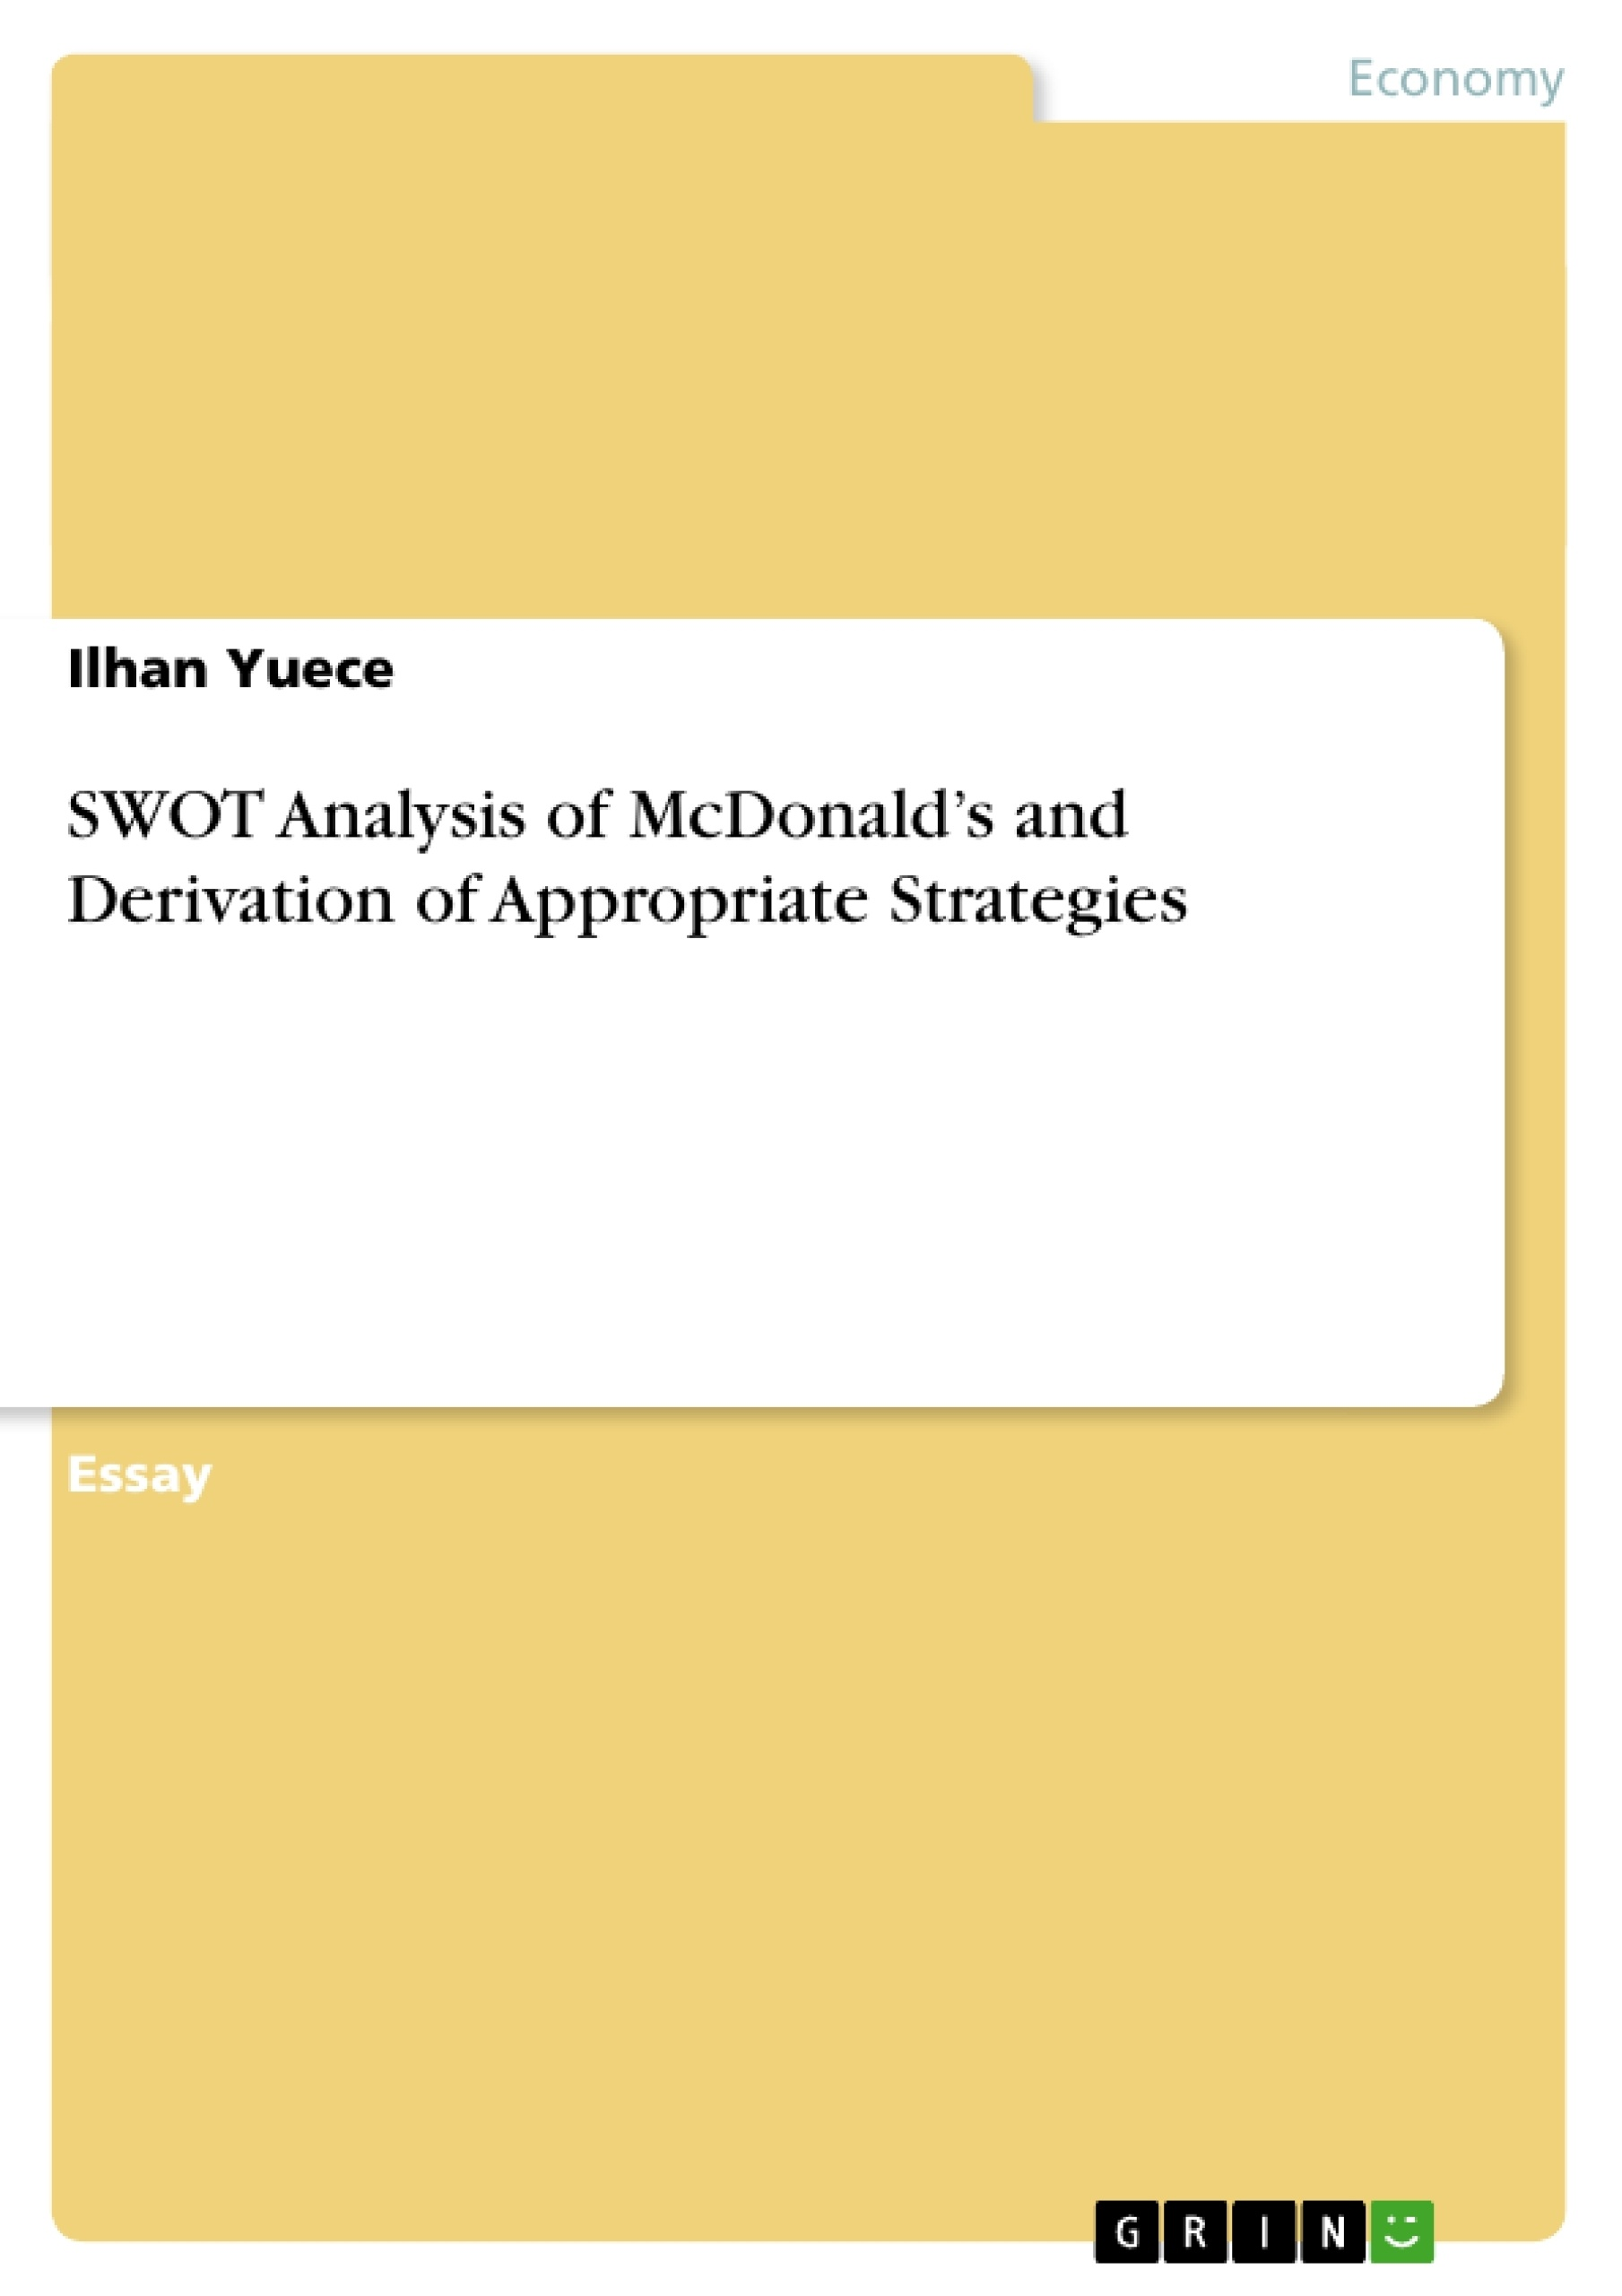 Title: SWOT Analysis of McDonald's and Derivation of Appropriate Strategies